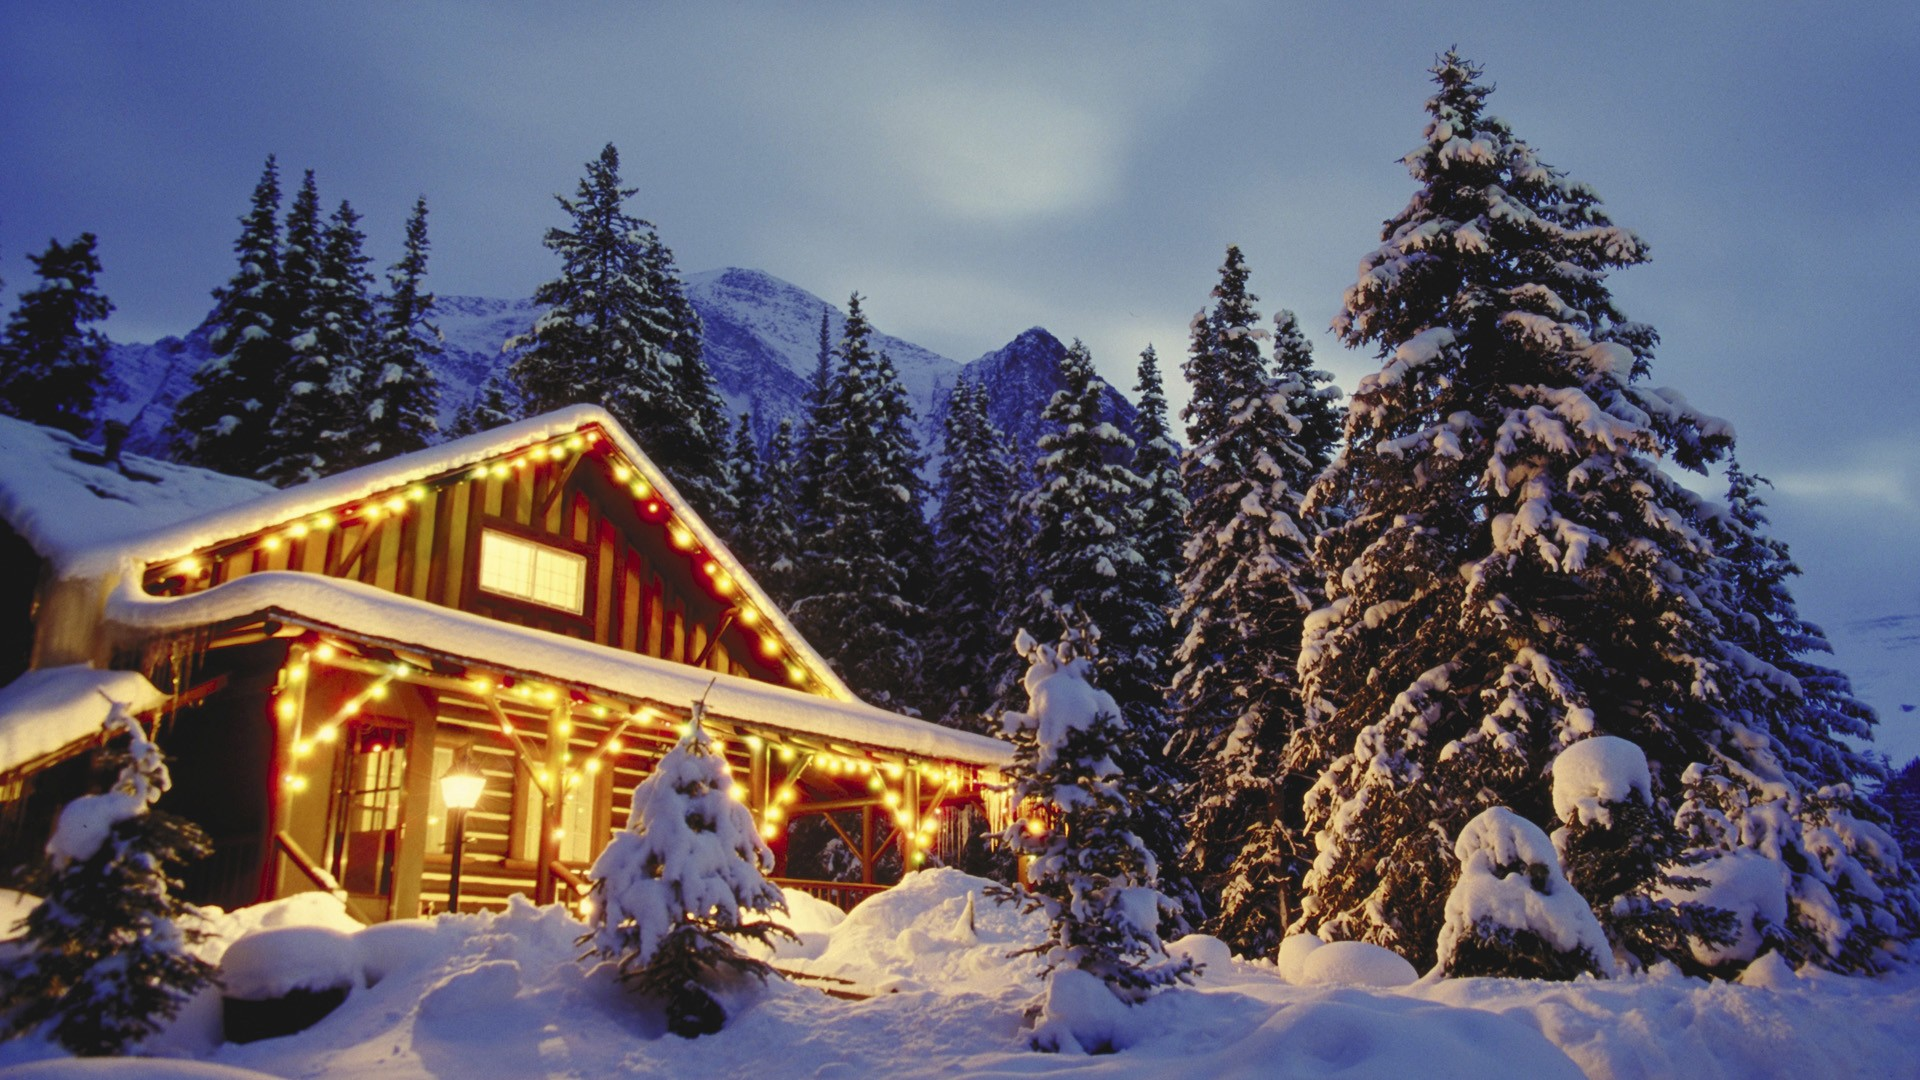 Wooden cabins in the snowy mountains wallpaper Wallpaper Wide HD 1920x1080